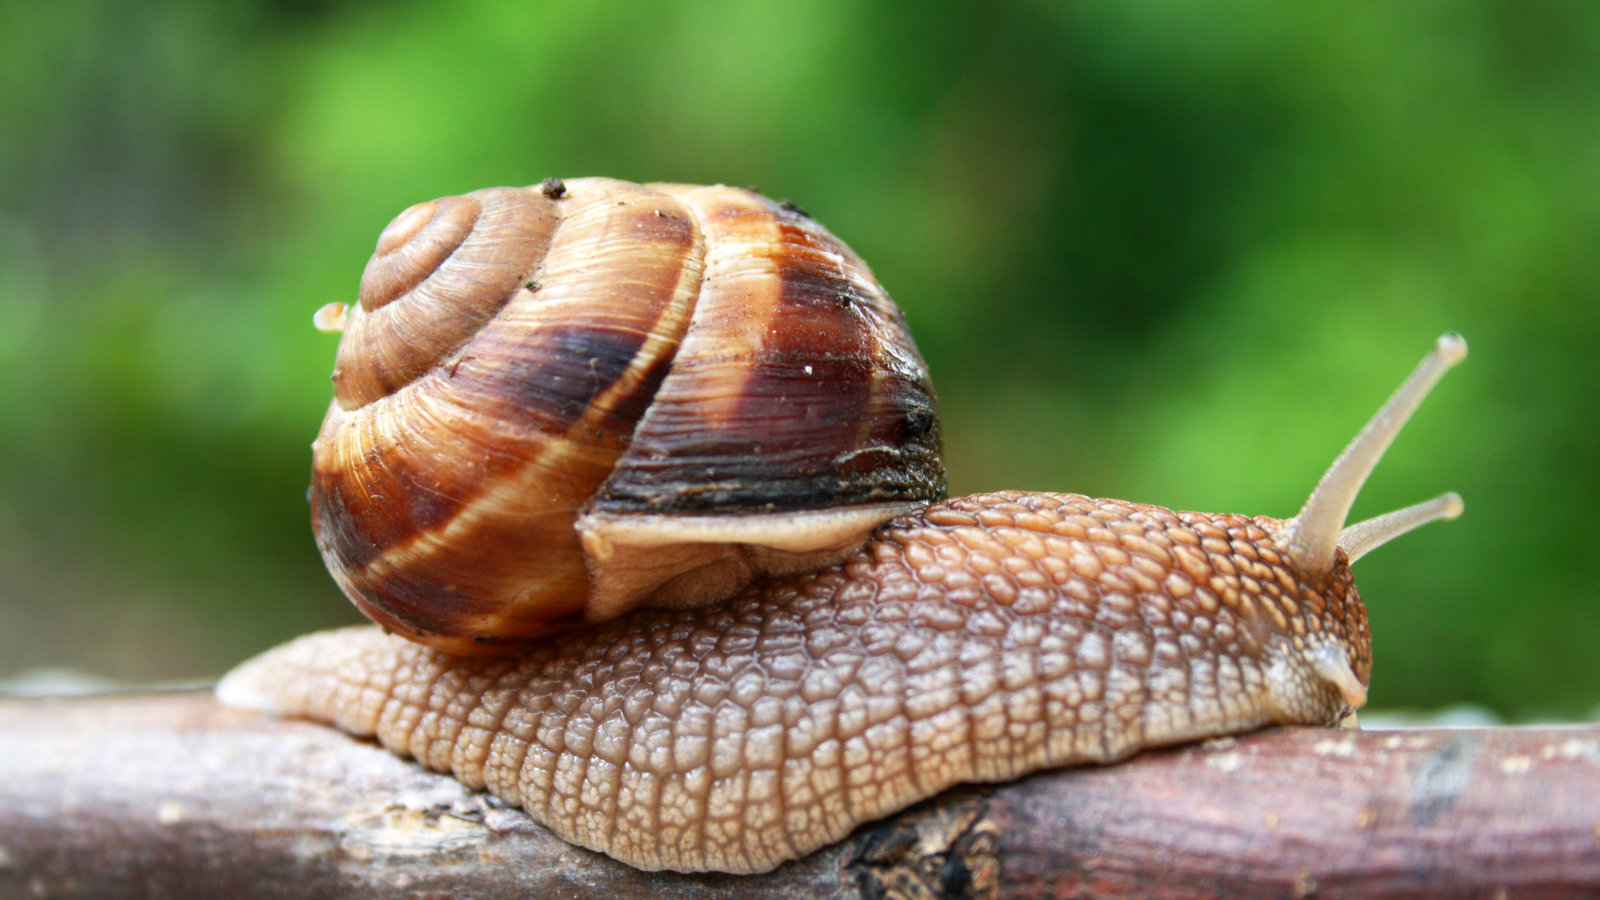 vampiric implants turn snails into tiny recon scouts